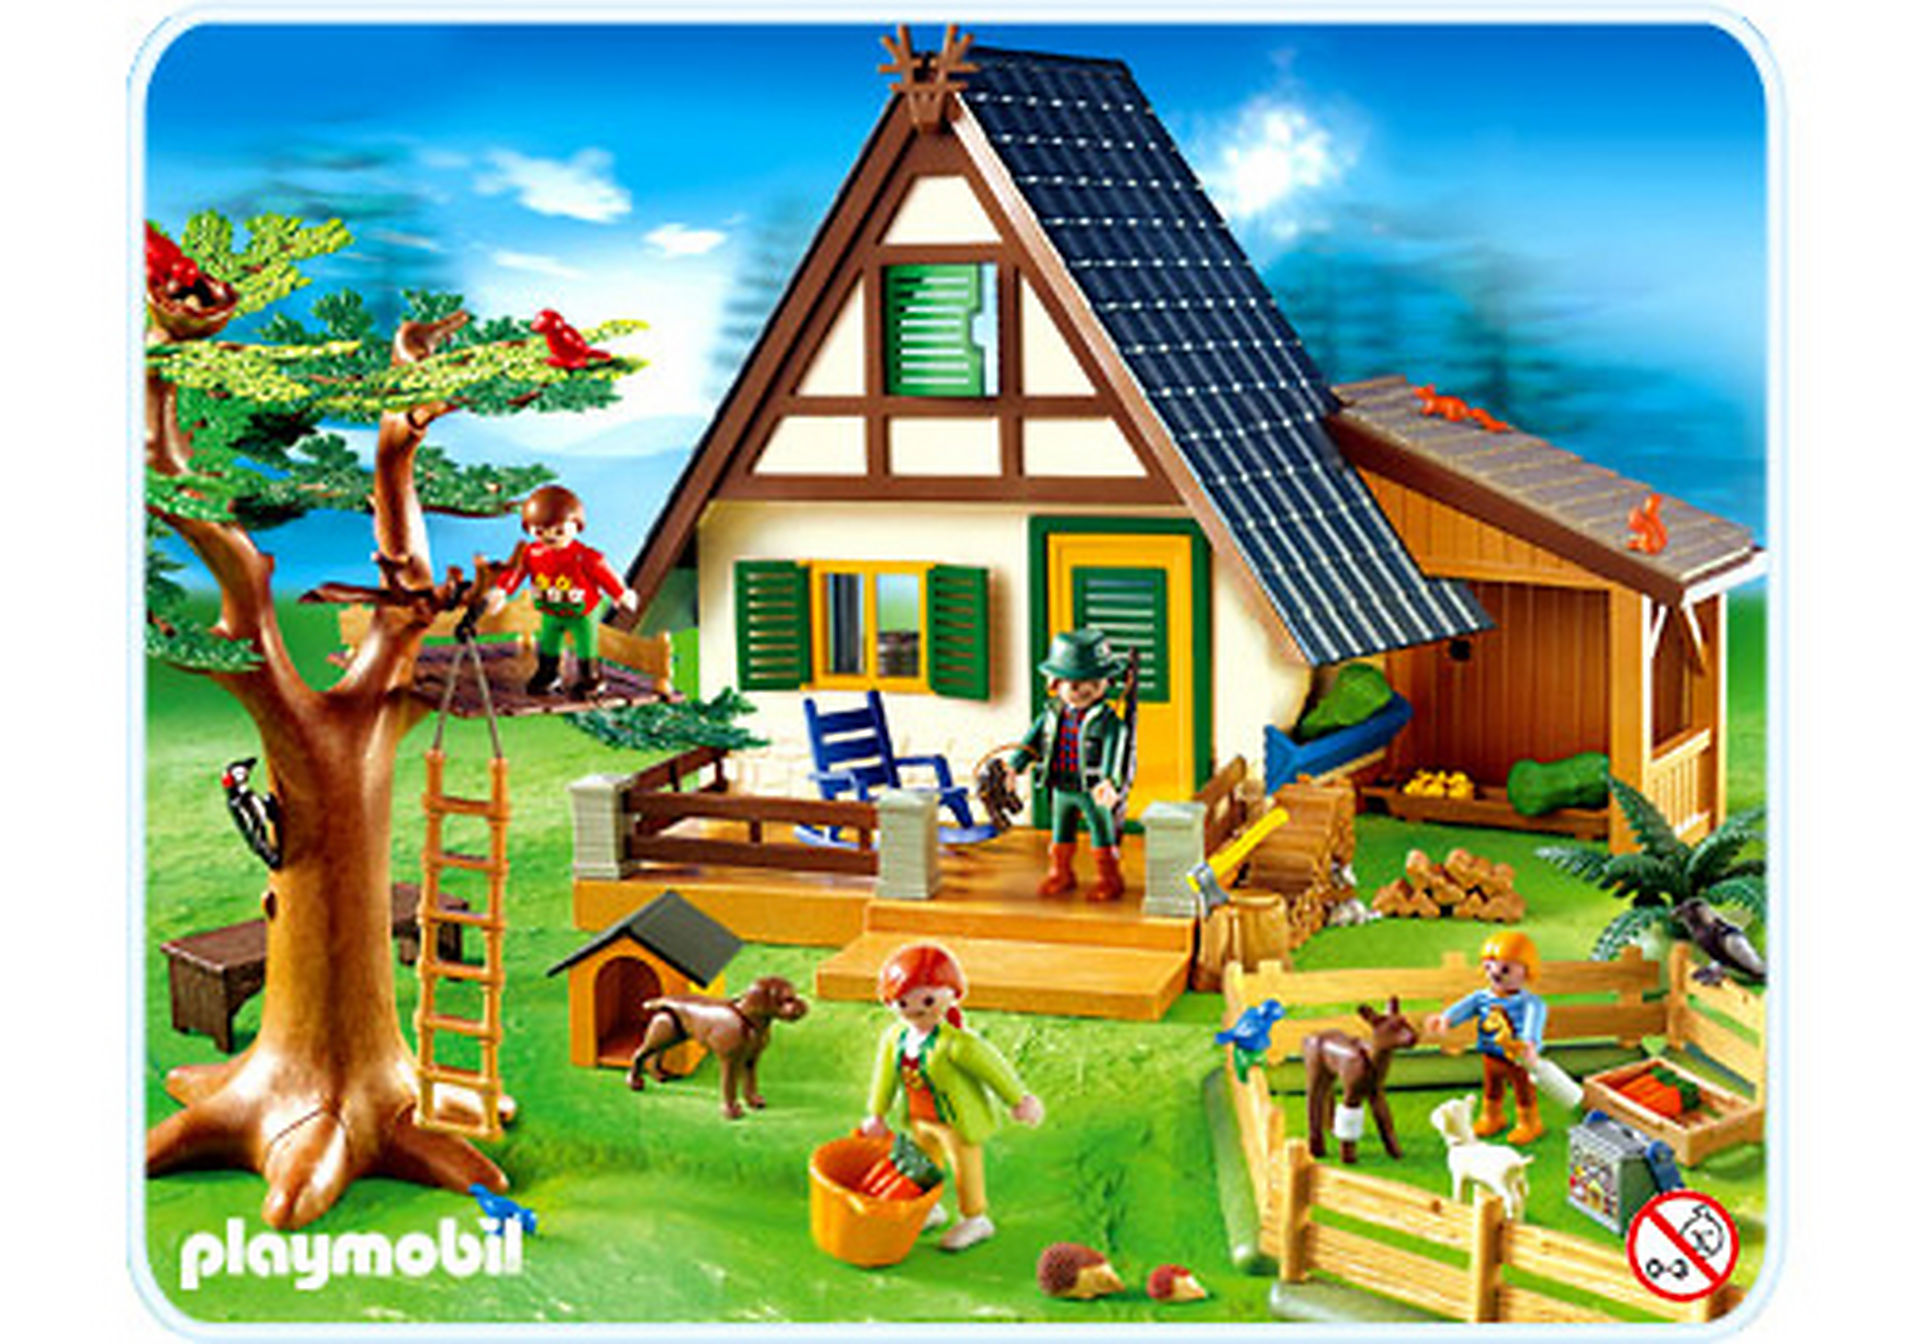 http://media.playmobil.com/i/playmobil/4207-A_product_detail/Forsthaus mit Tierpflegestation